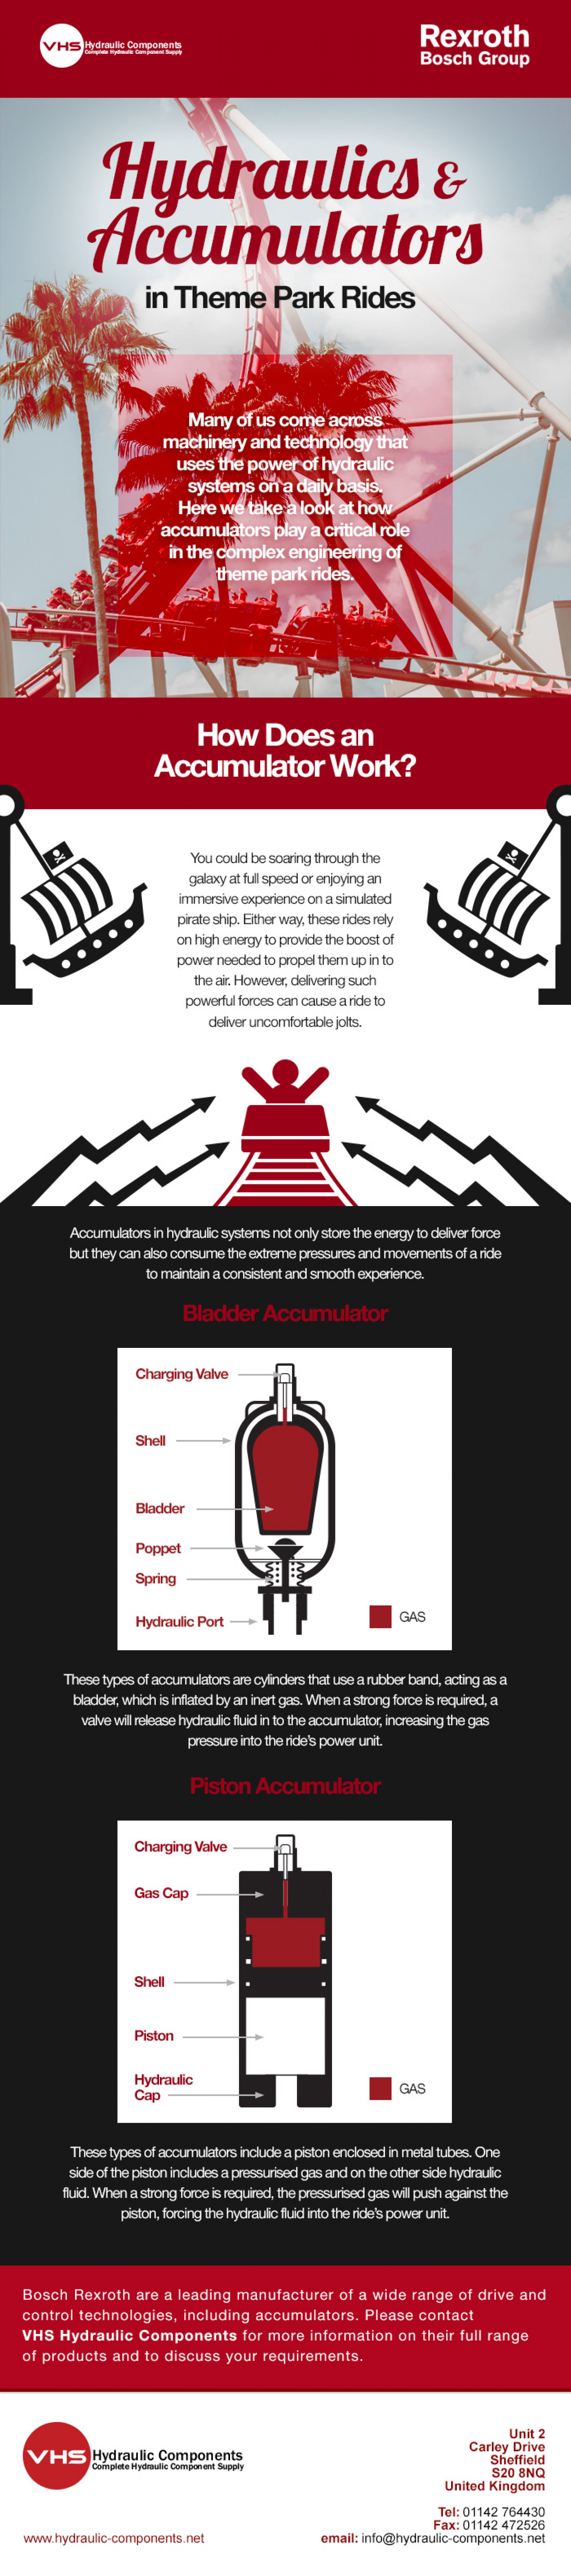 Hydraulics and Accumulators in Theme Park Rides Infographic